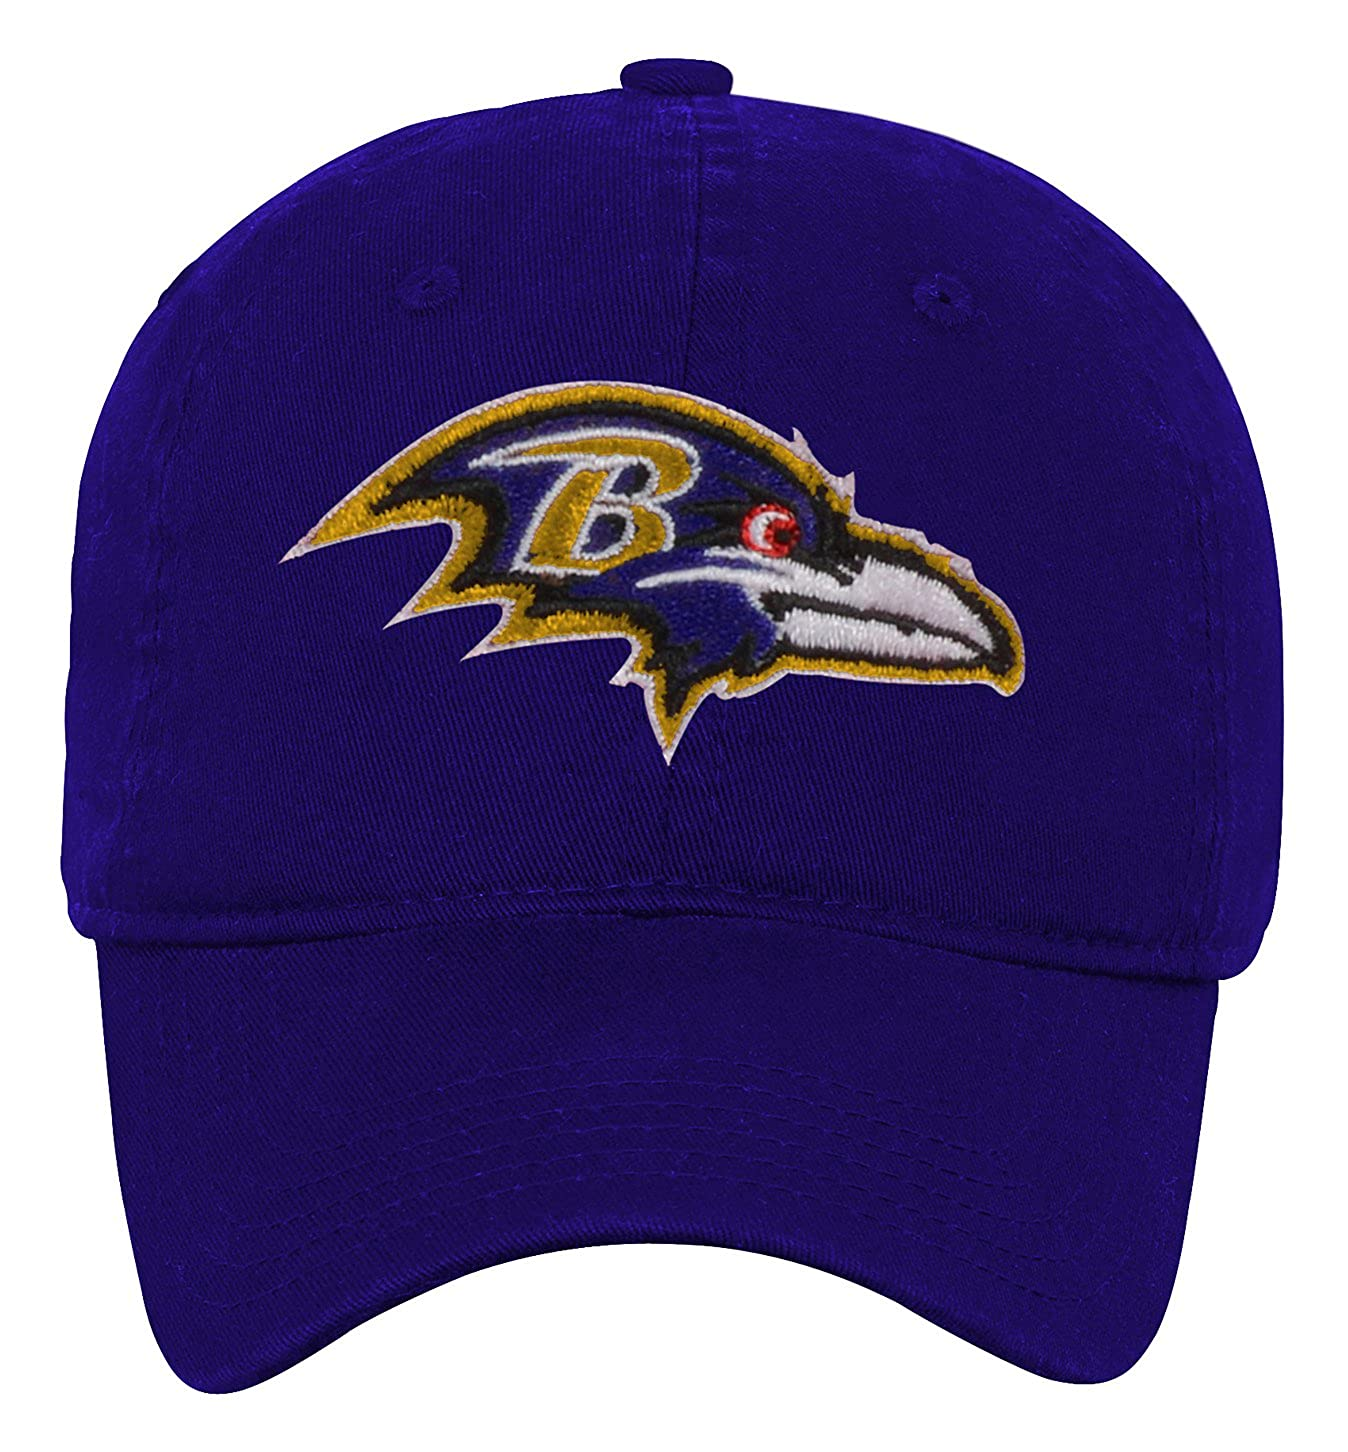 Outerstuff NFL Kids /& Youth Boys Team Slouch Adjustable Hat